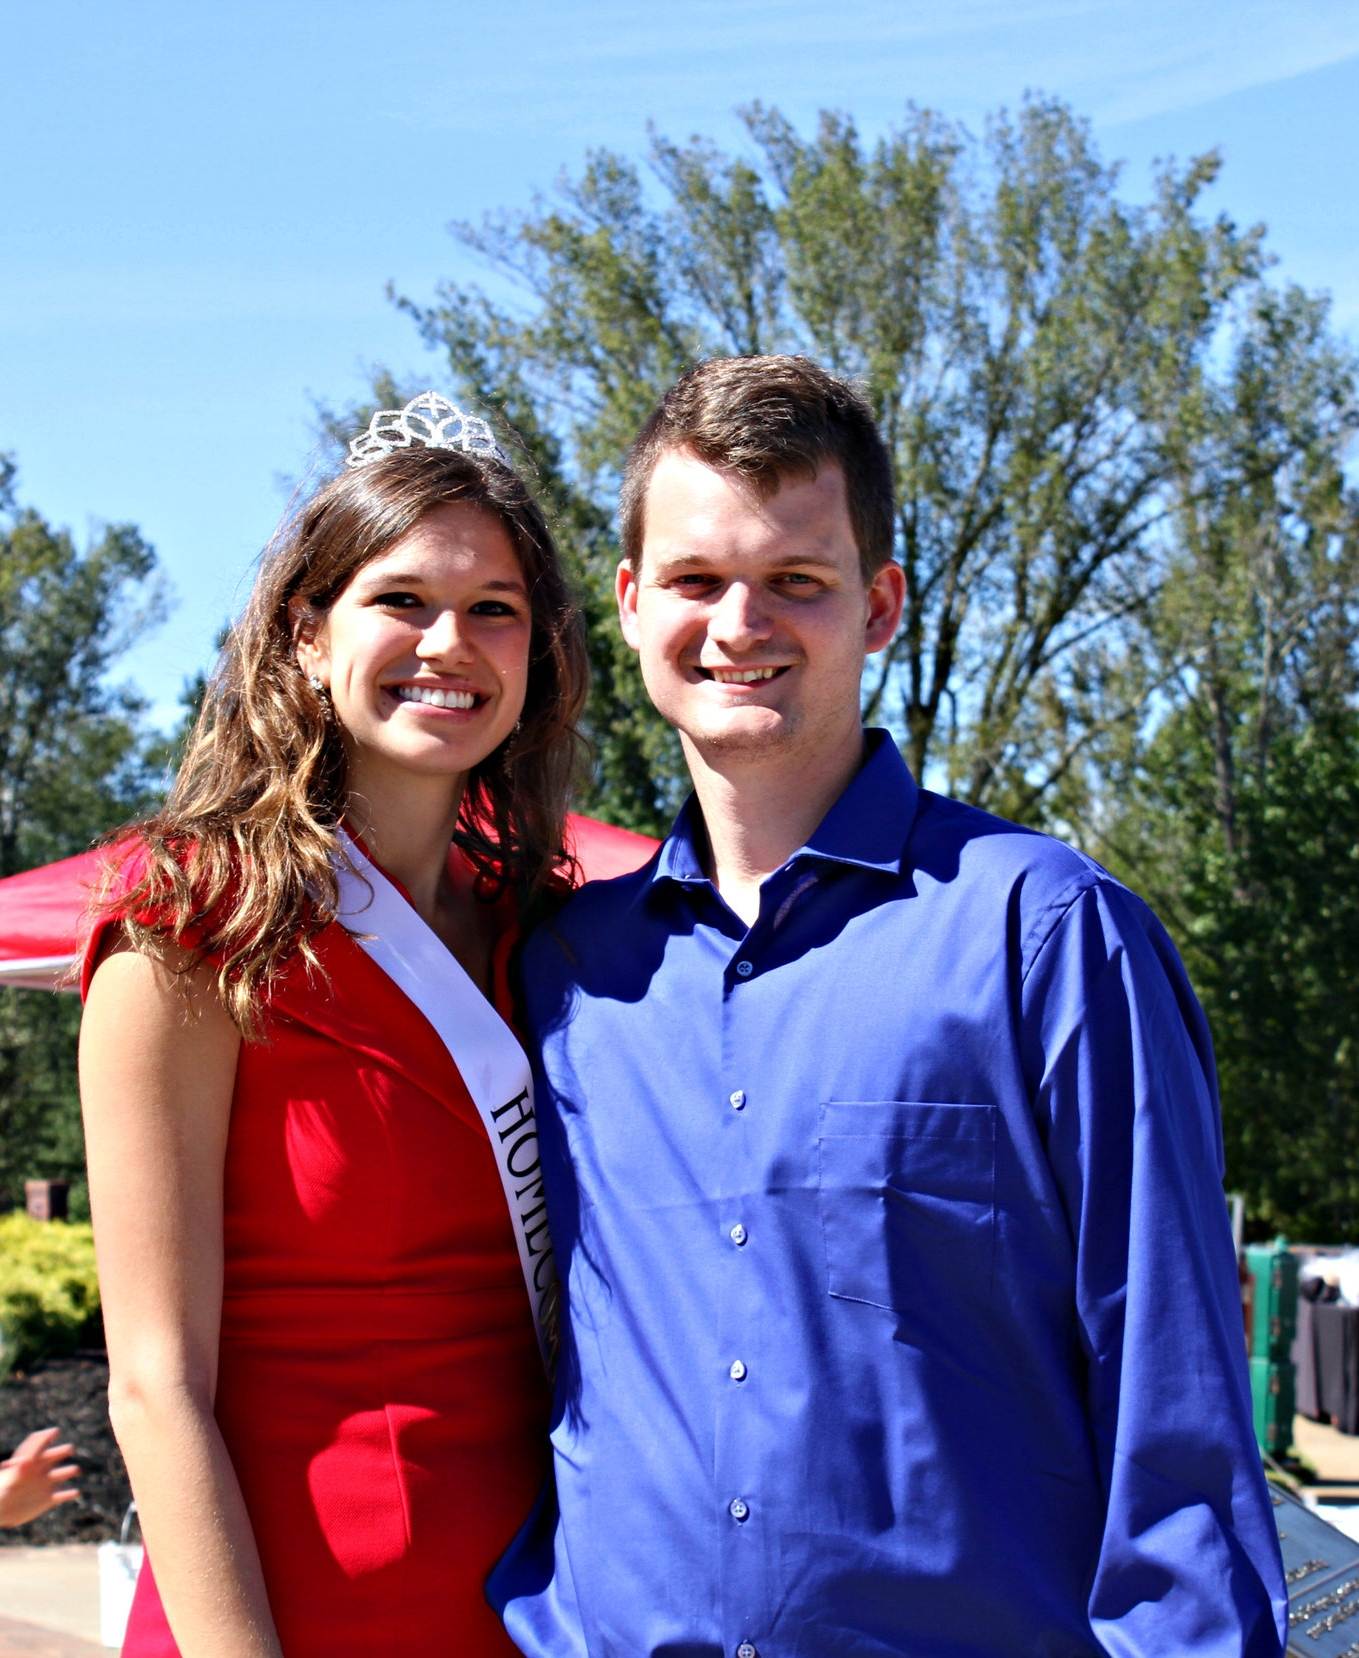 Former homecoming queen Eden Crain (senior), and her fiancé are enjoying homecoming as her last day of being queen.